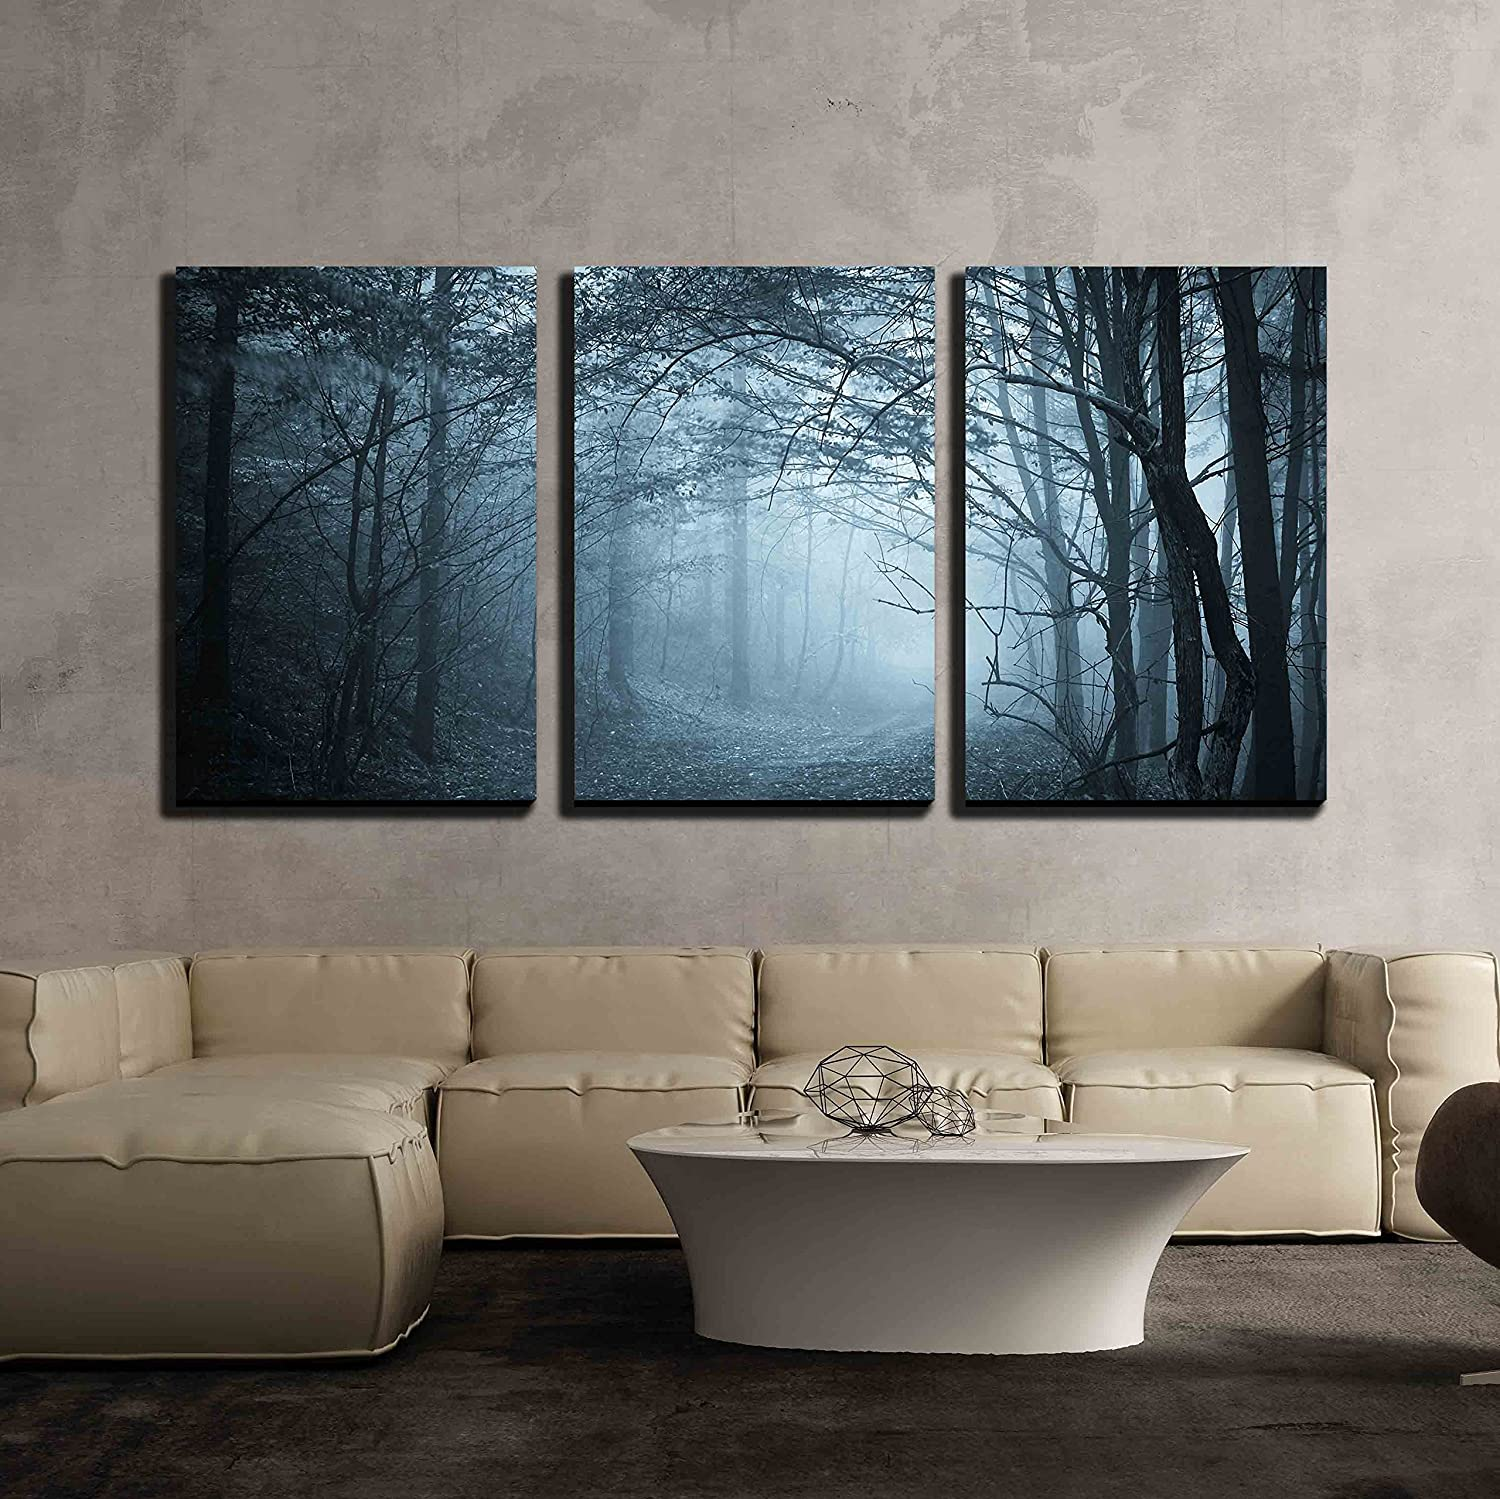 3 Piece Canvas Wall Art - Blue Light in a Mysterious Forest with Fog - Modern Home Art Stretched and Framed Ready to Hang - 16